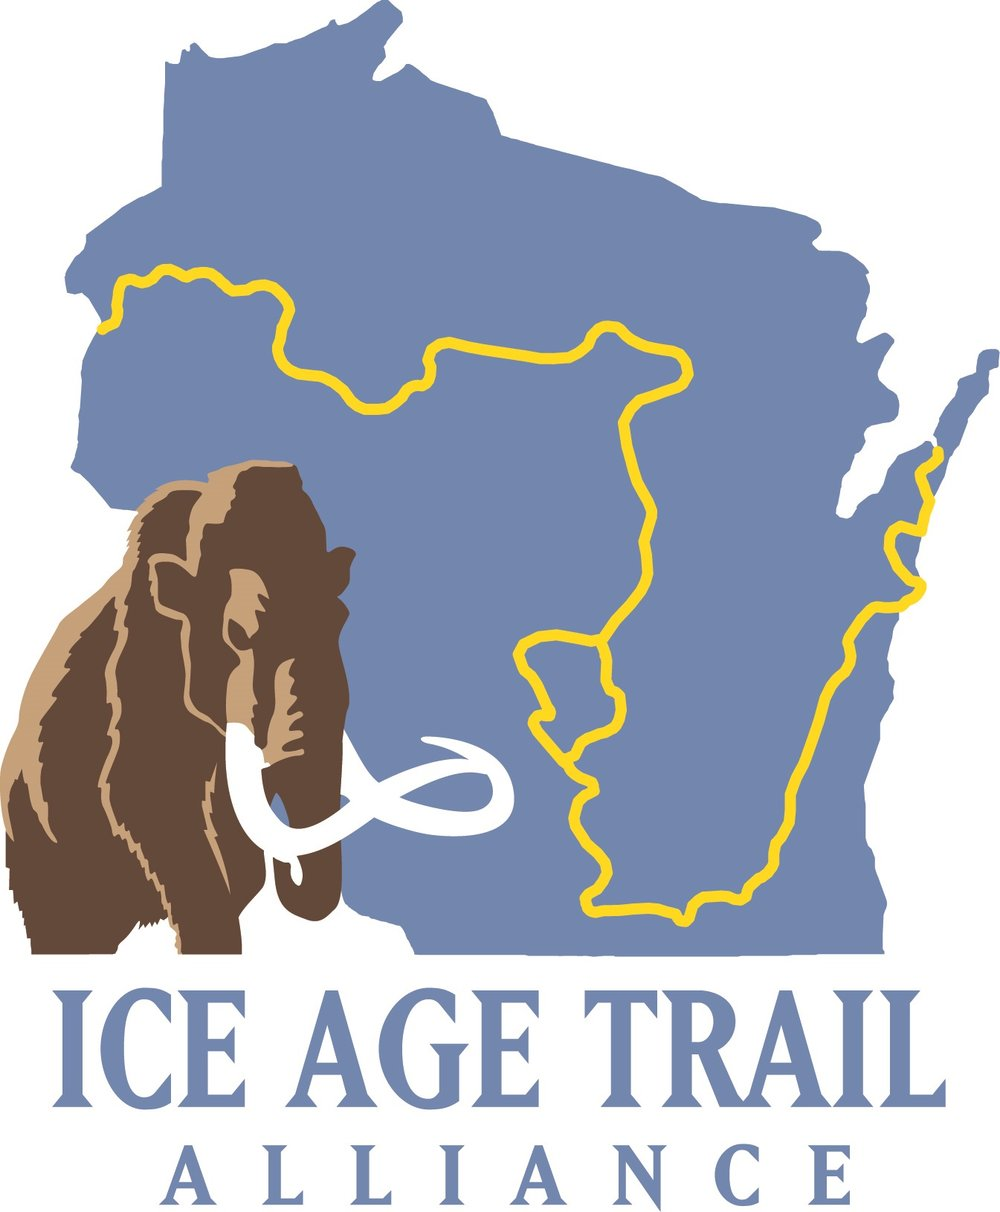 10% of Race Fees to the Ice Age Trail Alliance - The Ice Age Trail Alliance (IATA) creates, supports, and protects a thousand-mile footpath tracing Ice Age formations across Wisconsin — the Ice Age National Scenic Trail.The (IATA) built and maintains the Arbor Ridge Segment of the Ice Age Trail. Arbor Rock Running will be donating 10% of the Arbor Ridge Trail Race proceeds to the IATA. Please consider an additional donation to the IATA to help preserve and develop Wisconsin's iconic Ice Age Trail.Click here to make an additional donation to the IATA.